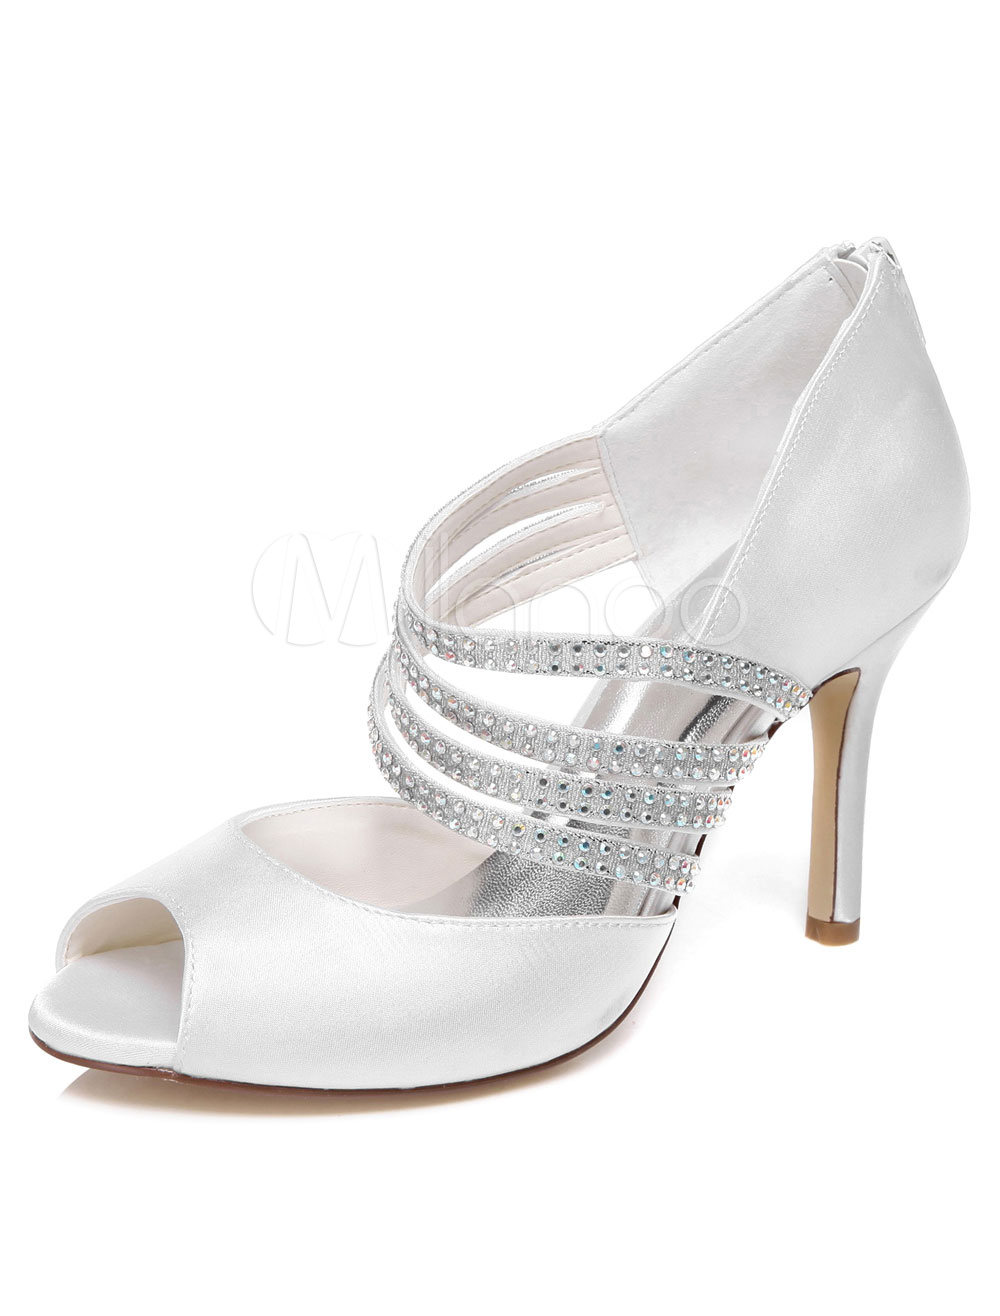 Buy Ivory Rhinestones Satin Peep Toe Evening&Bridal Sandals for Women for $58.39 in Milanoo store